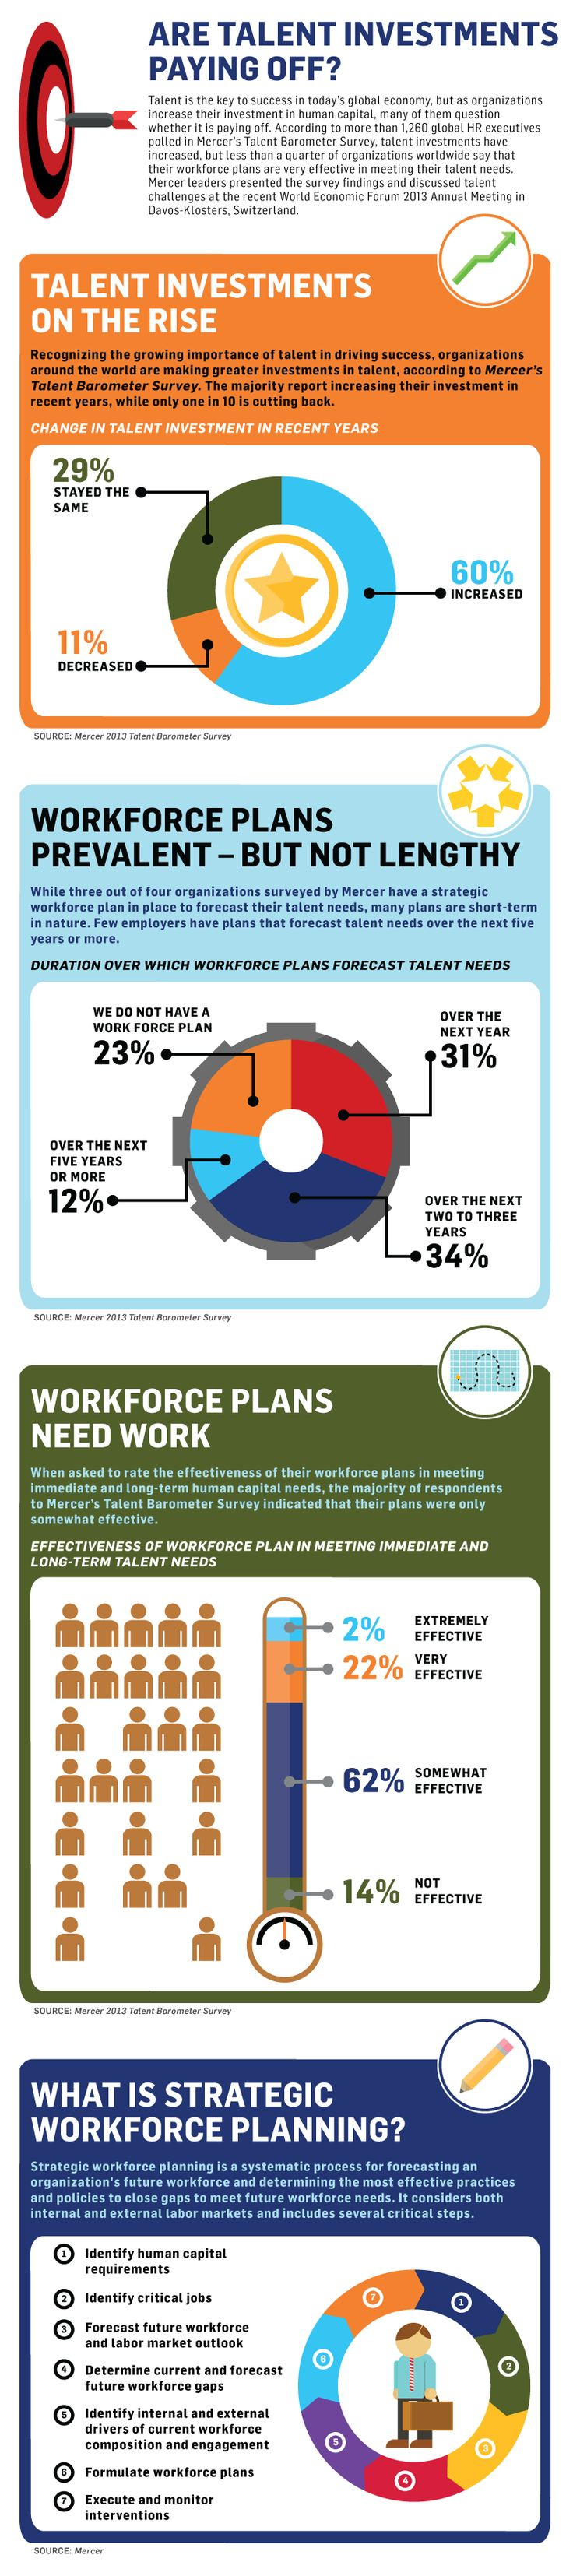 Best Workforce Planning Images On   Human Resources